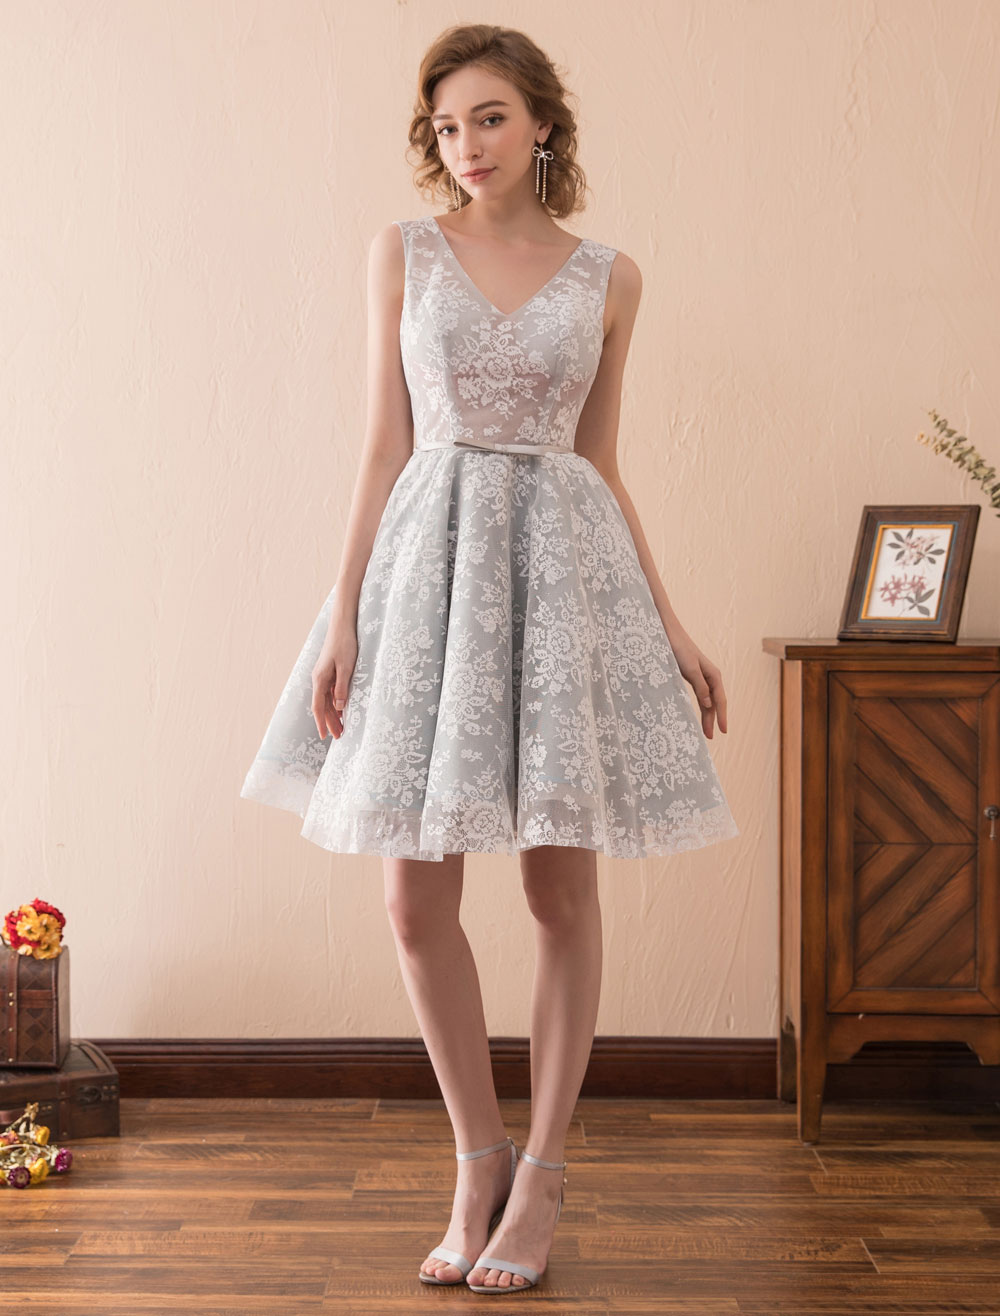 Short Prom Dresses Lace V Neck Homecoming Dress Light Grey Bow Sash Wedding Guest Dress